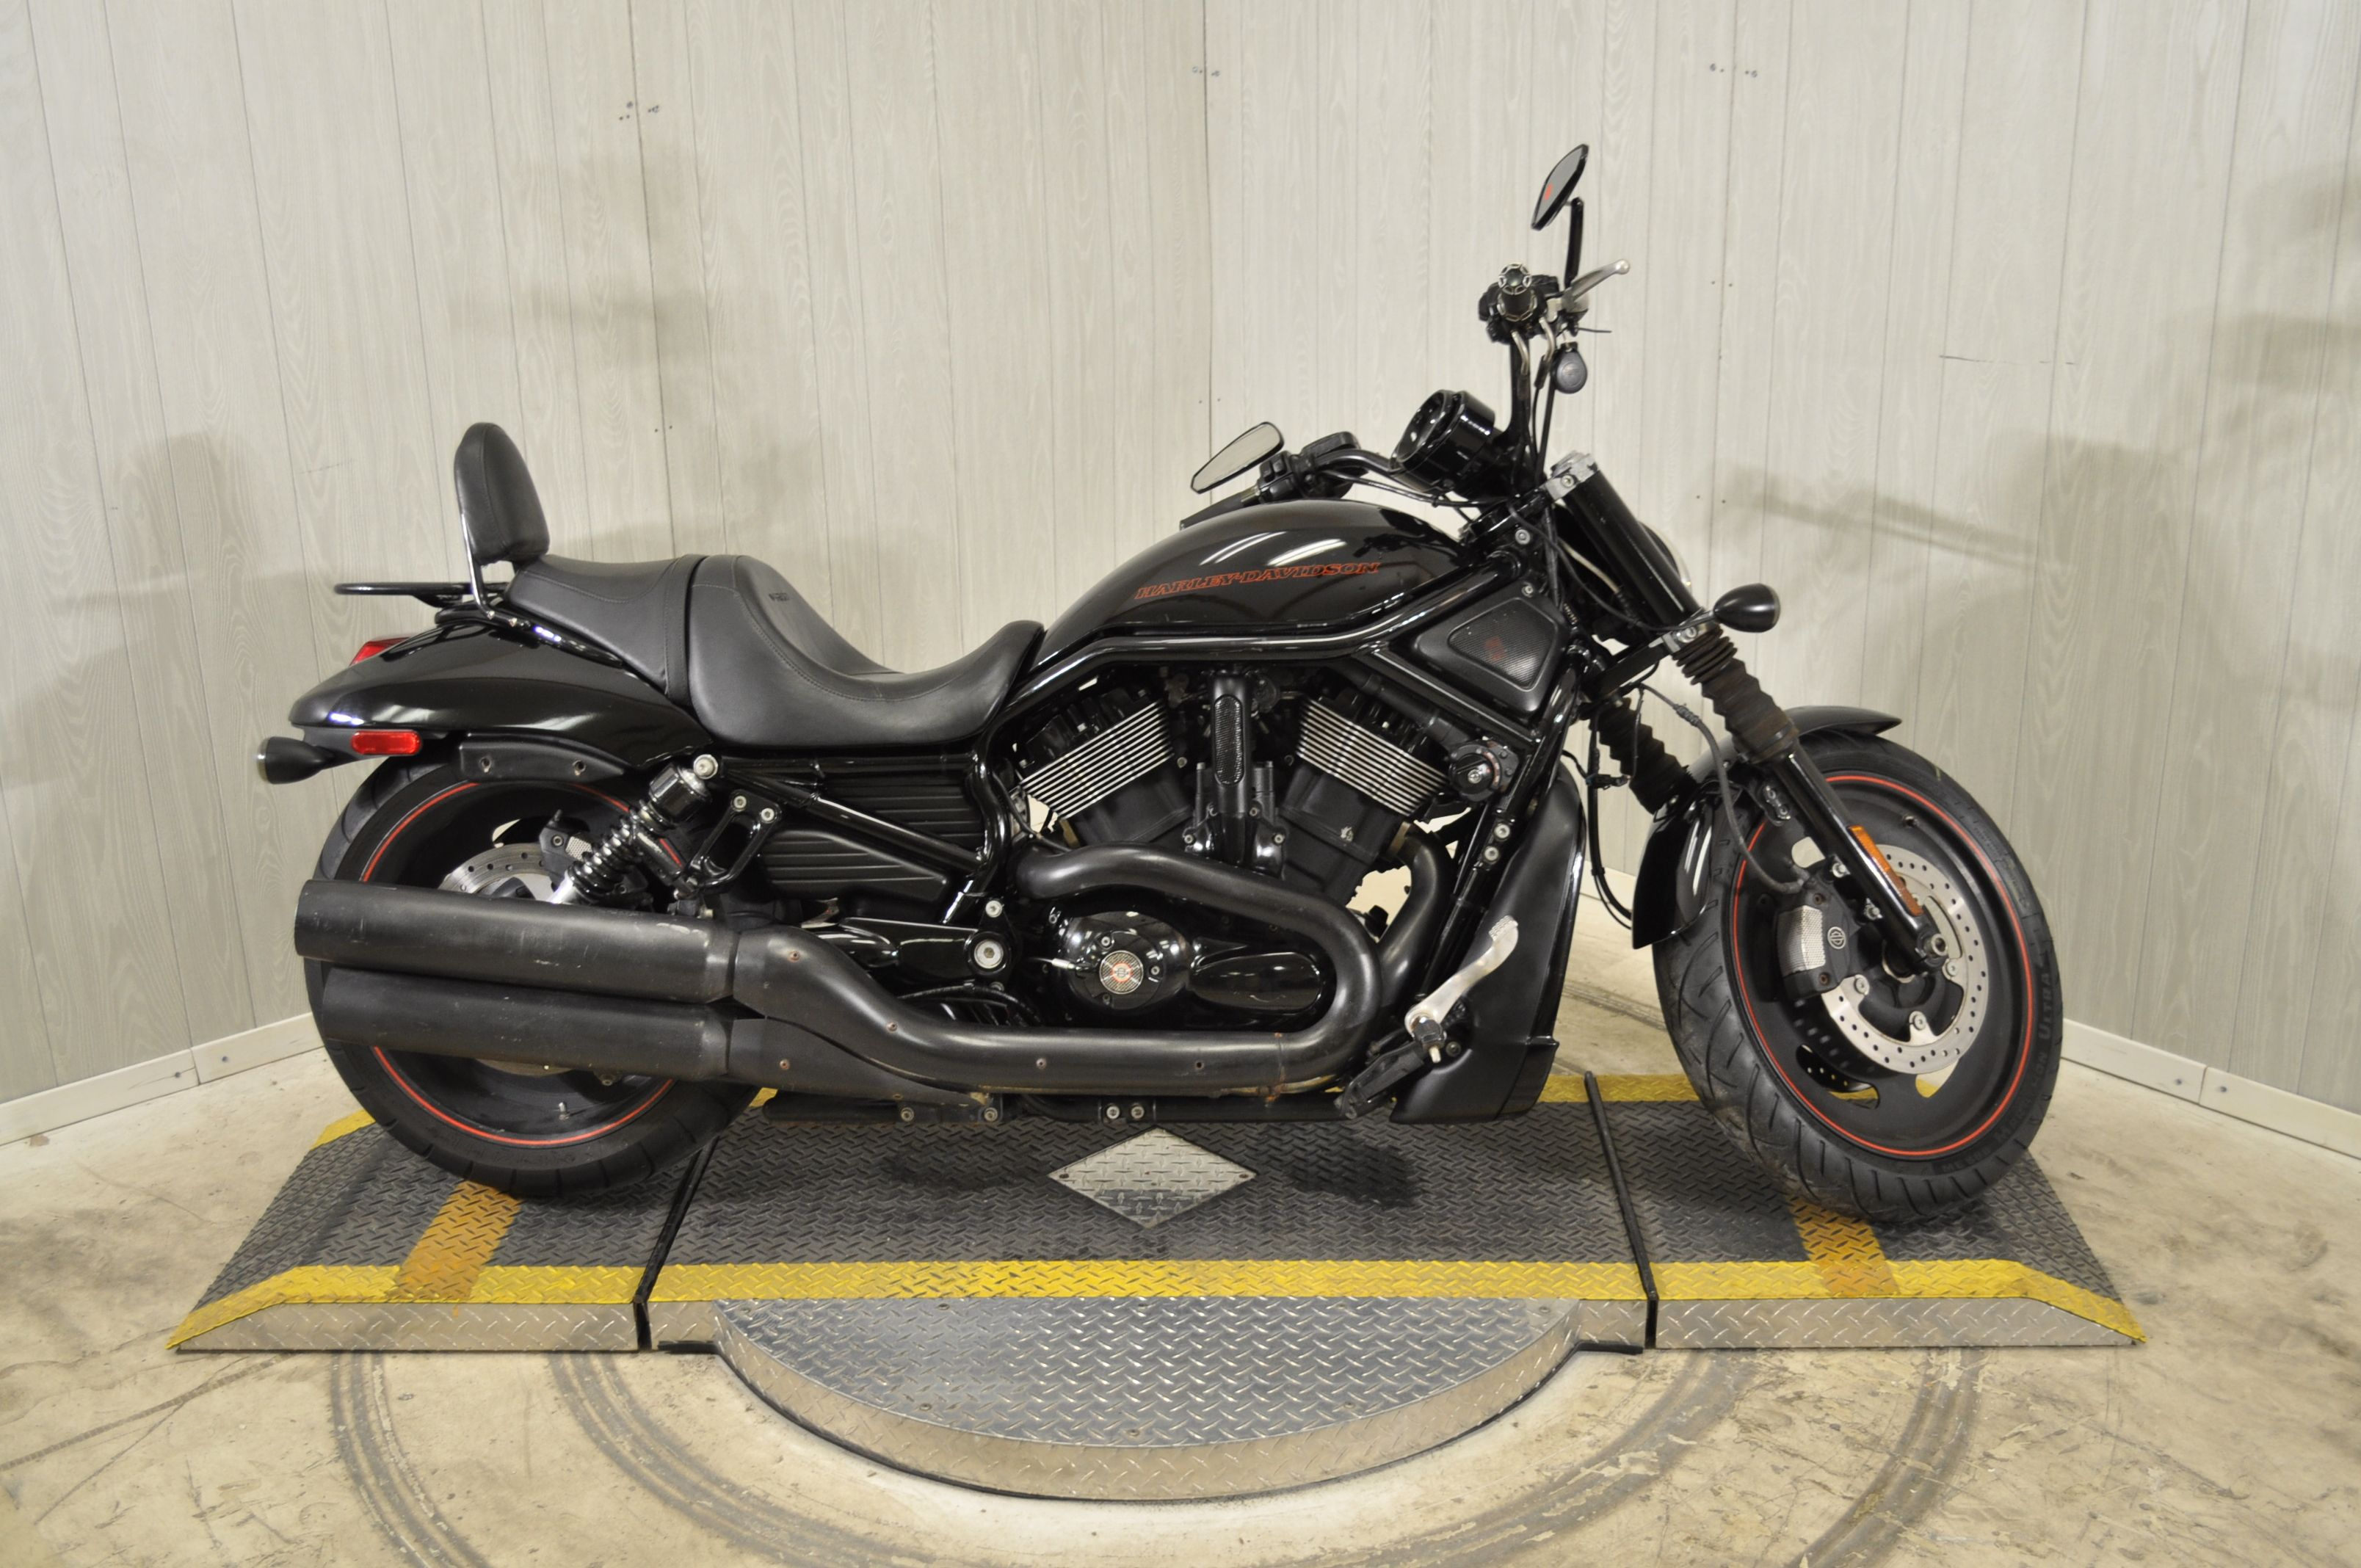 Pre Owned 2008 Harley Davidson Night Rod Special Vrscdx In Mobile Ap809796 Mobile Bay Harley Davidson